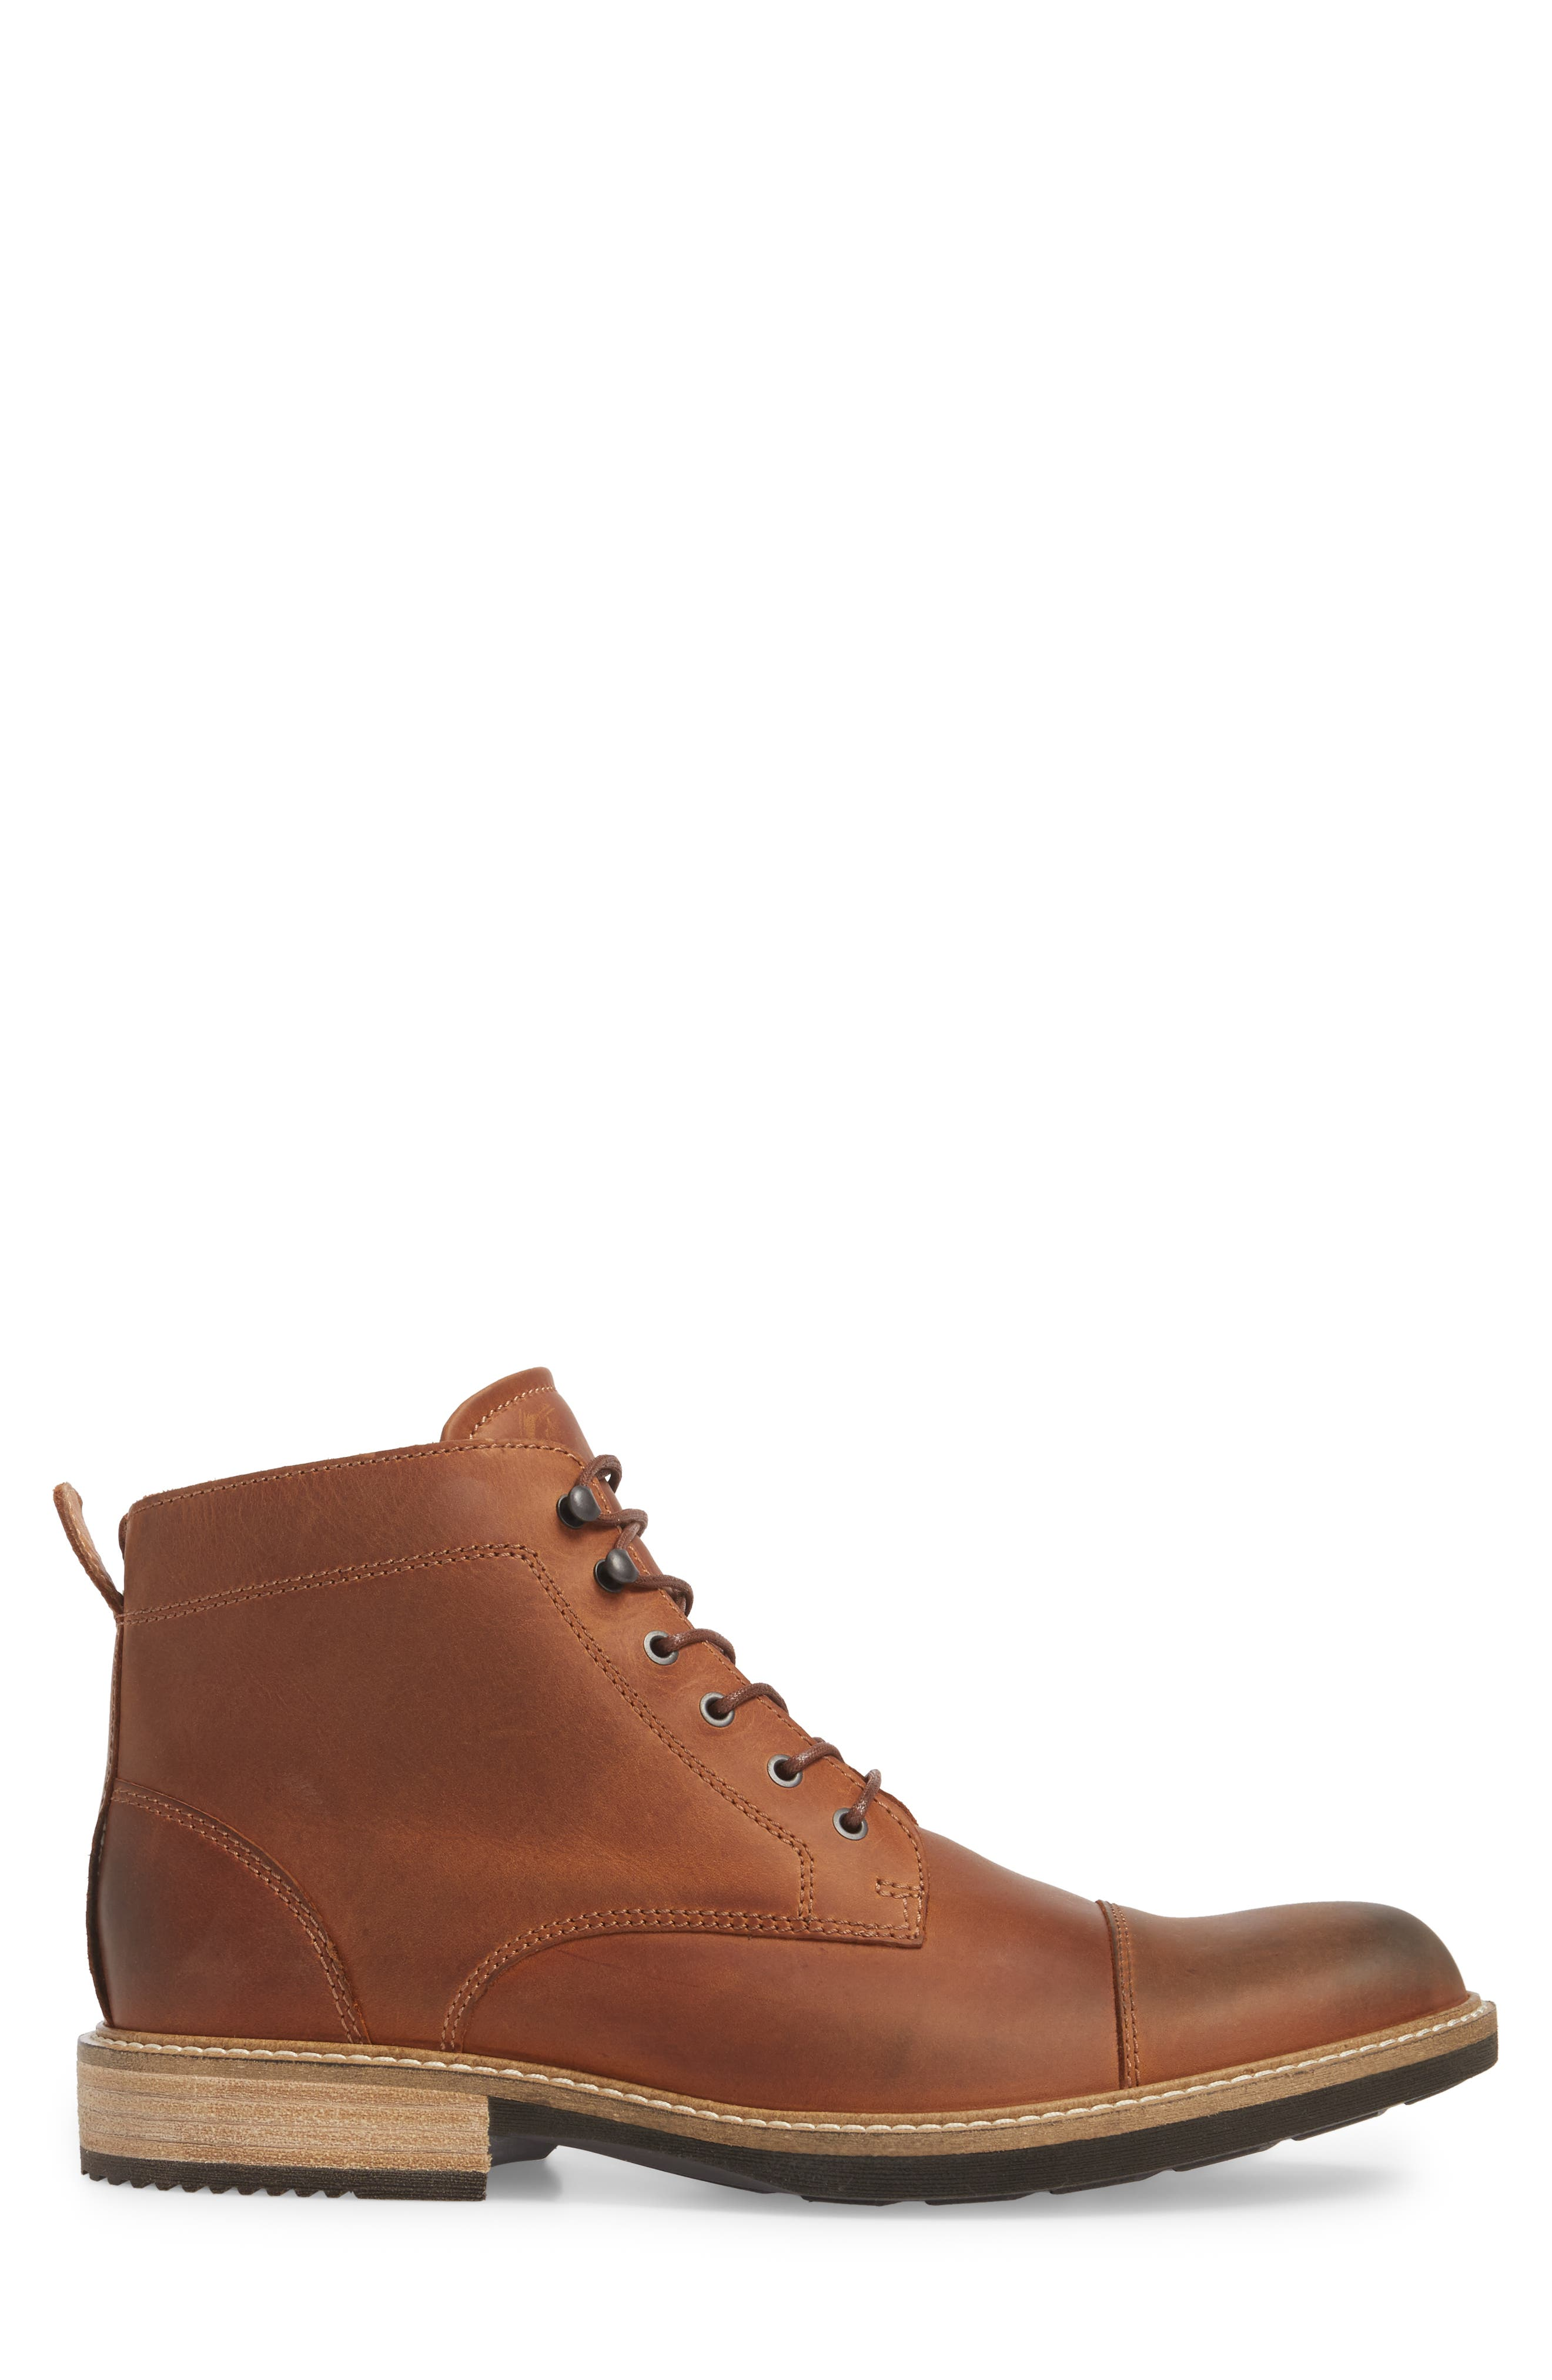 Kenton Vintage Cap Toe Boot,                             Alternate thumbnail 3, color,                             Cognac Leather